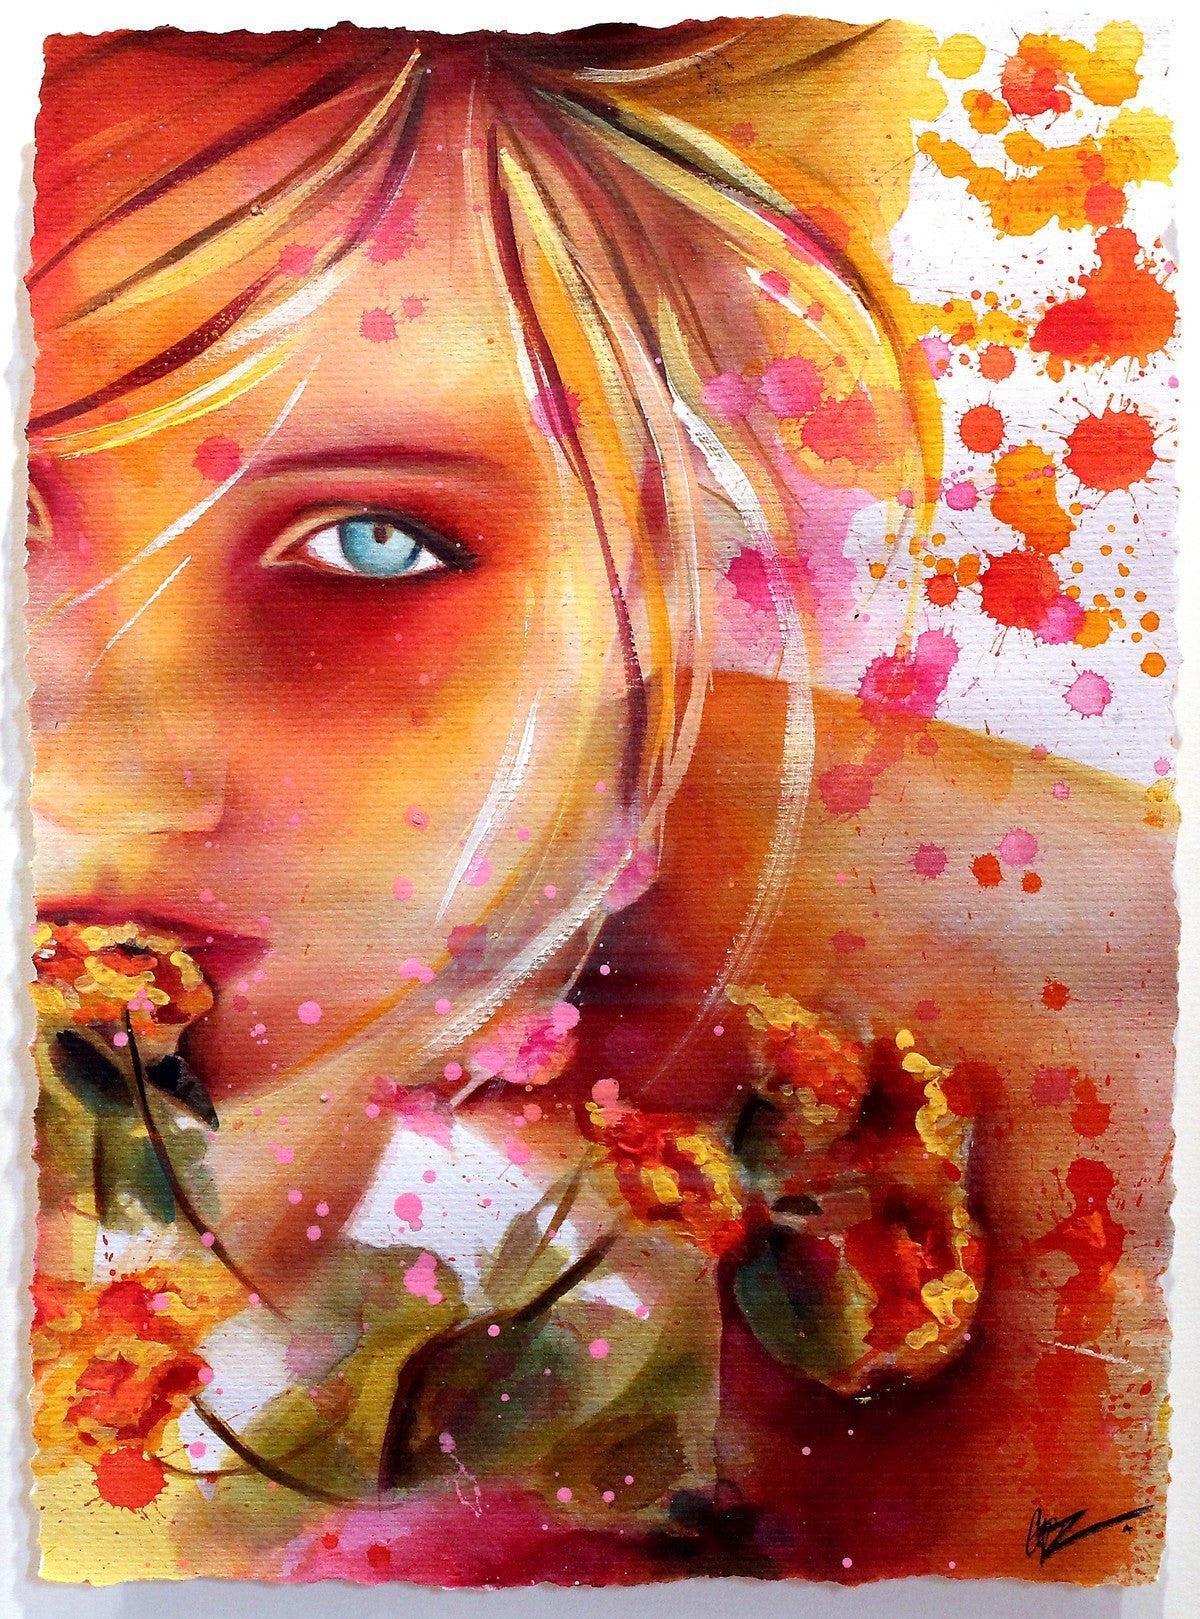 Honey Blood - ORIGINAL - SOLD Emma Grzonkowski